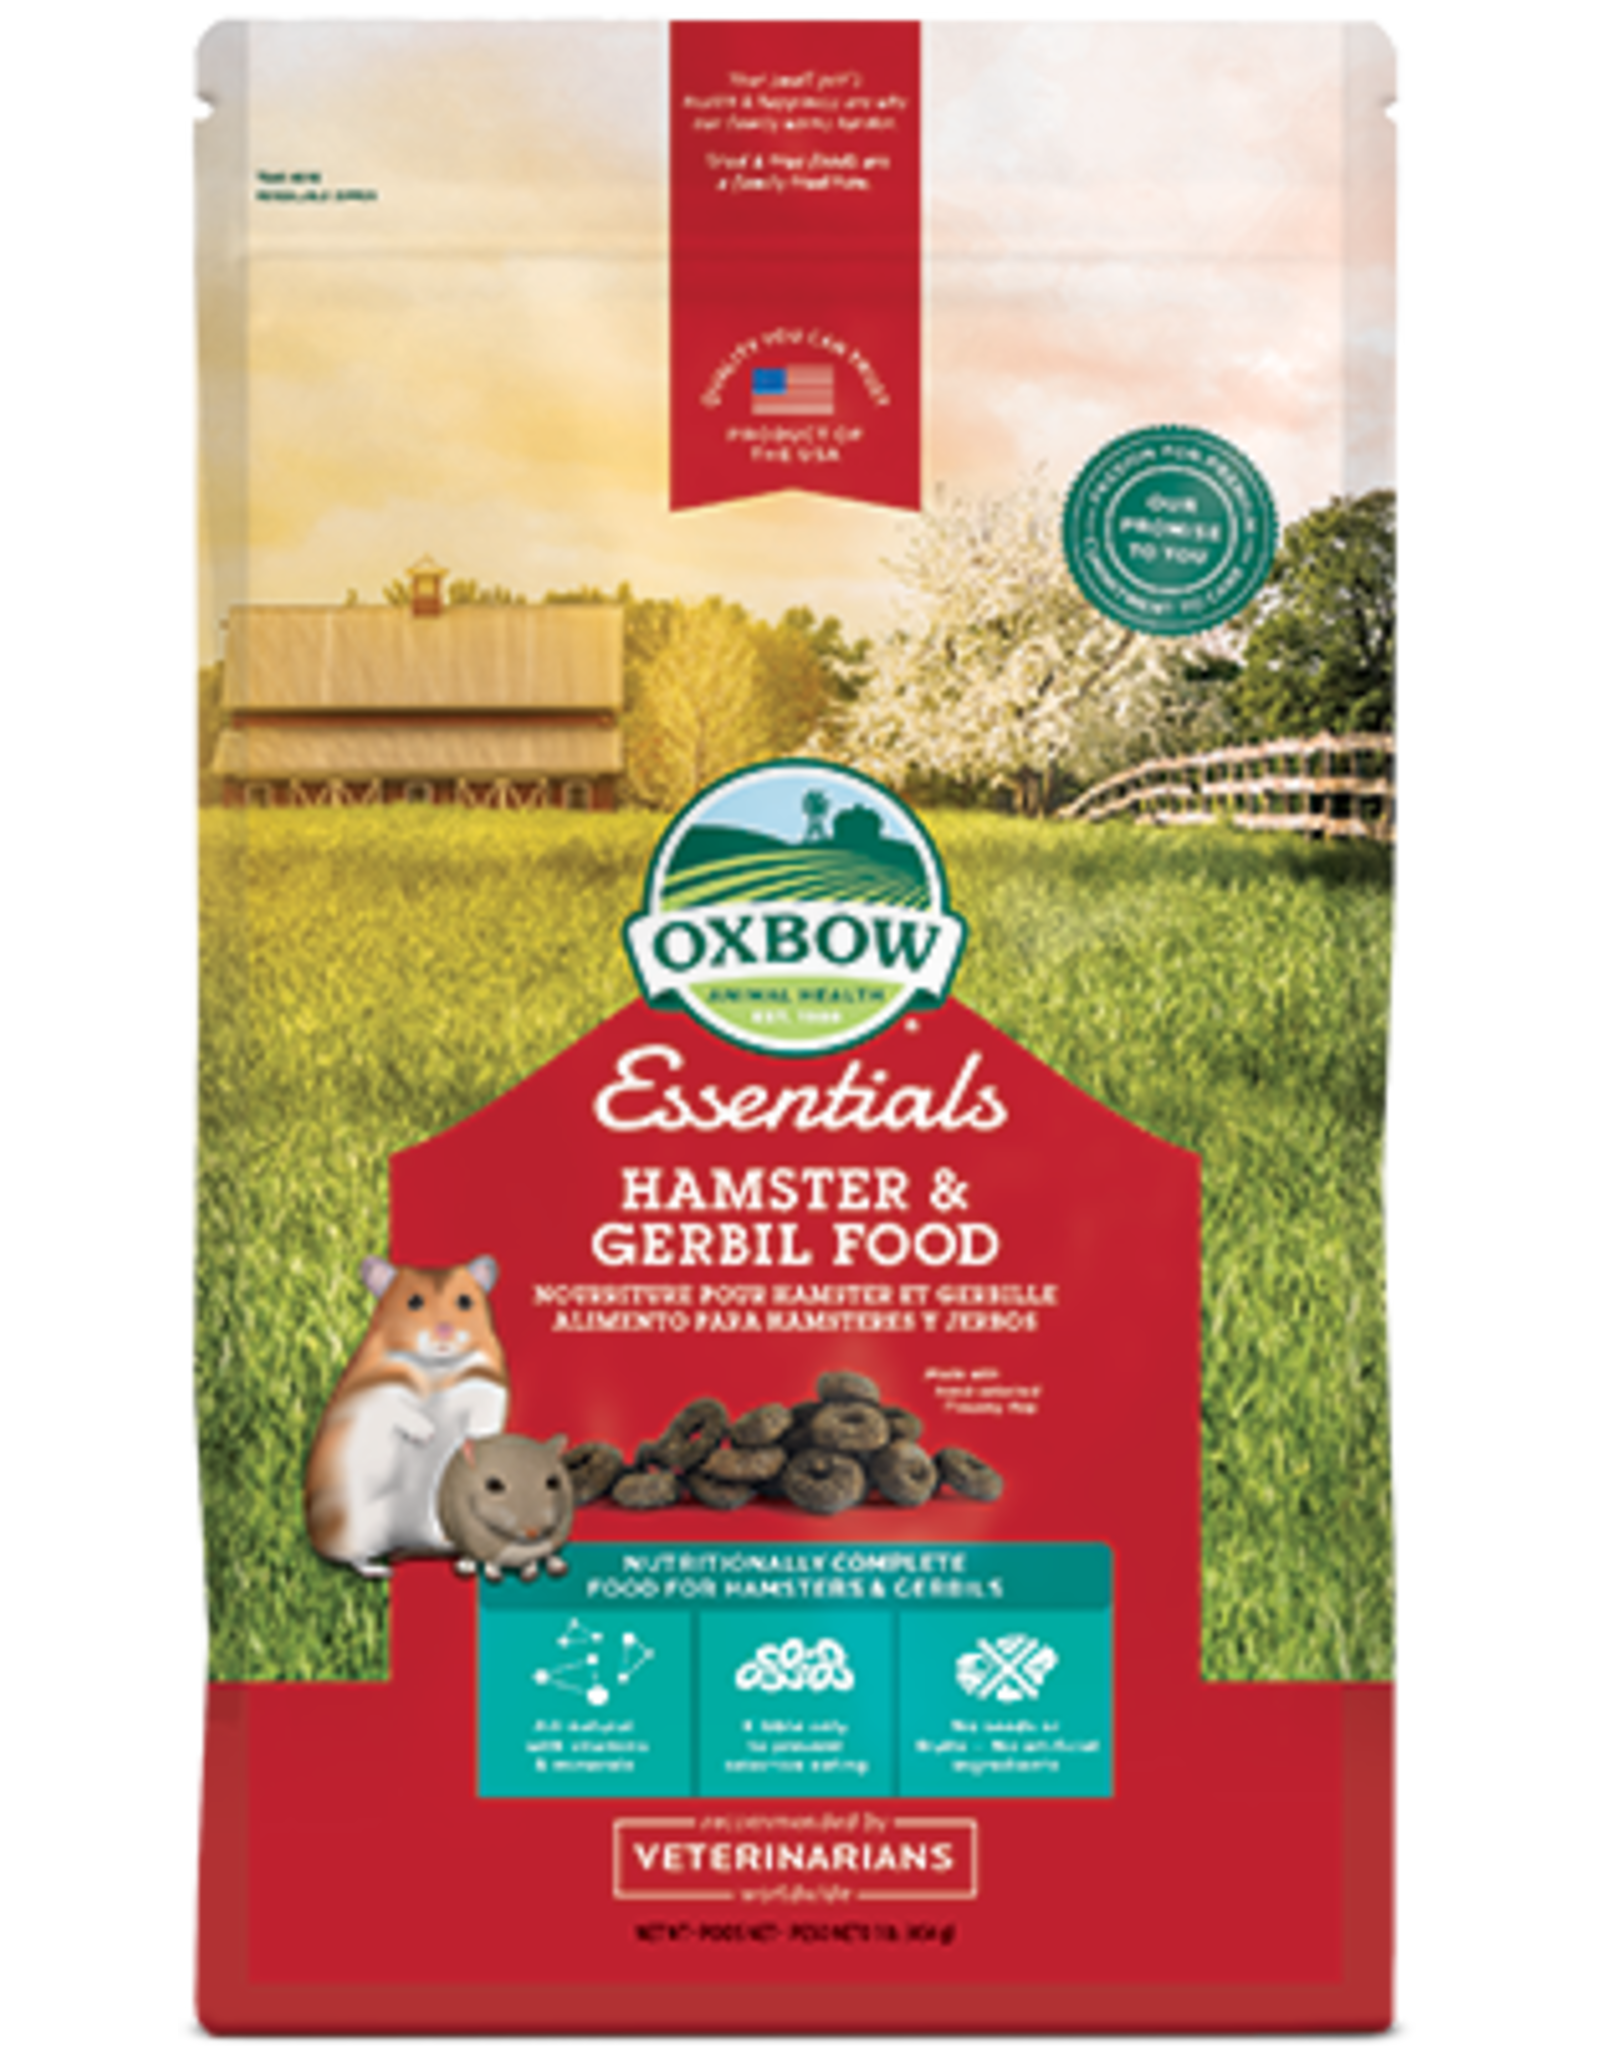 Oxbow Oxbow Essentials Hamster & Gerbil Food 6.8kg